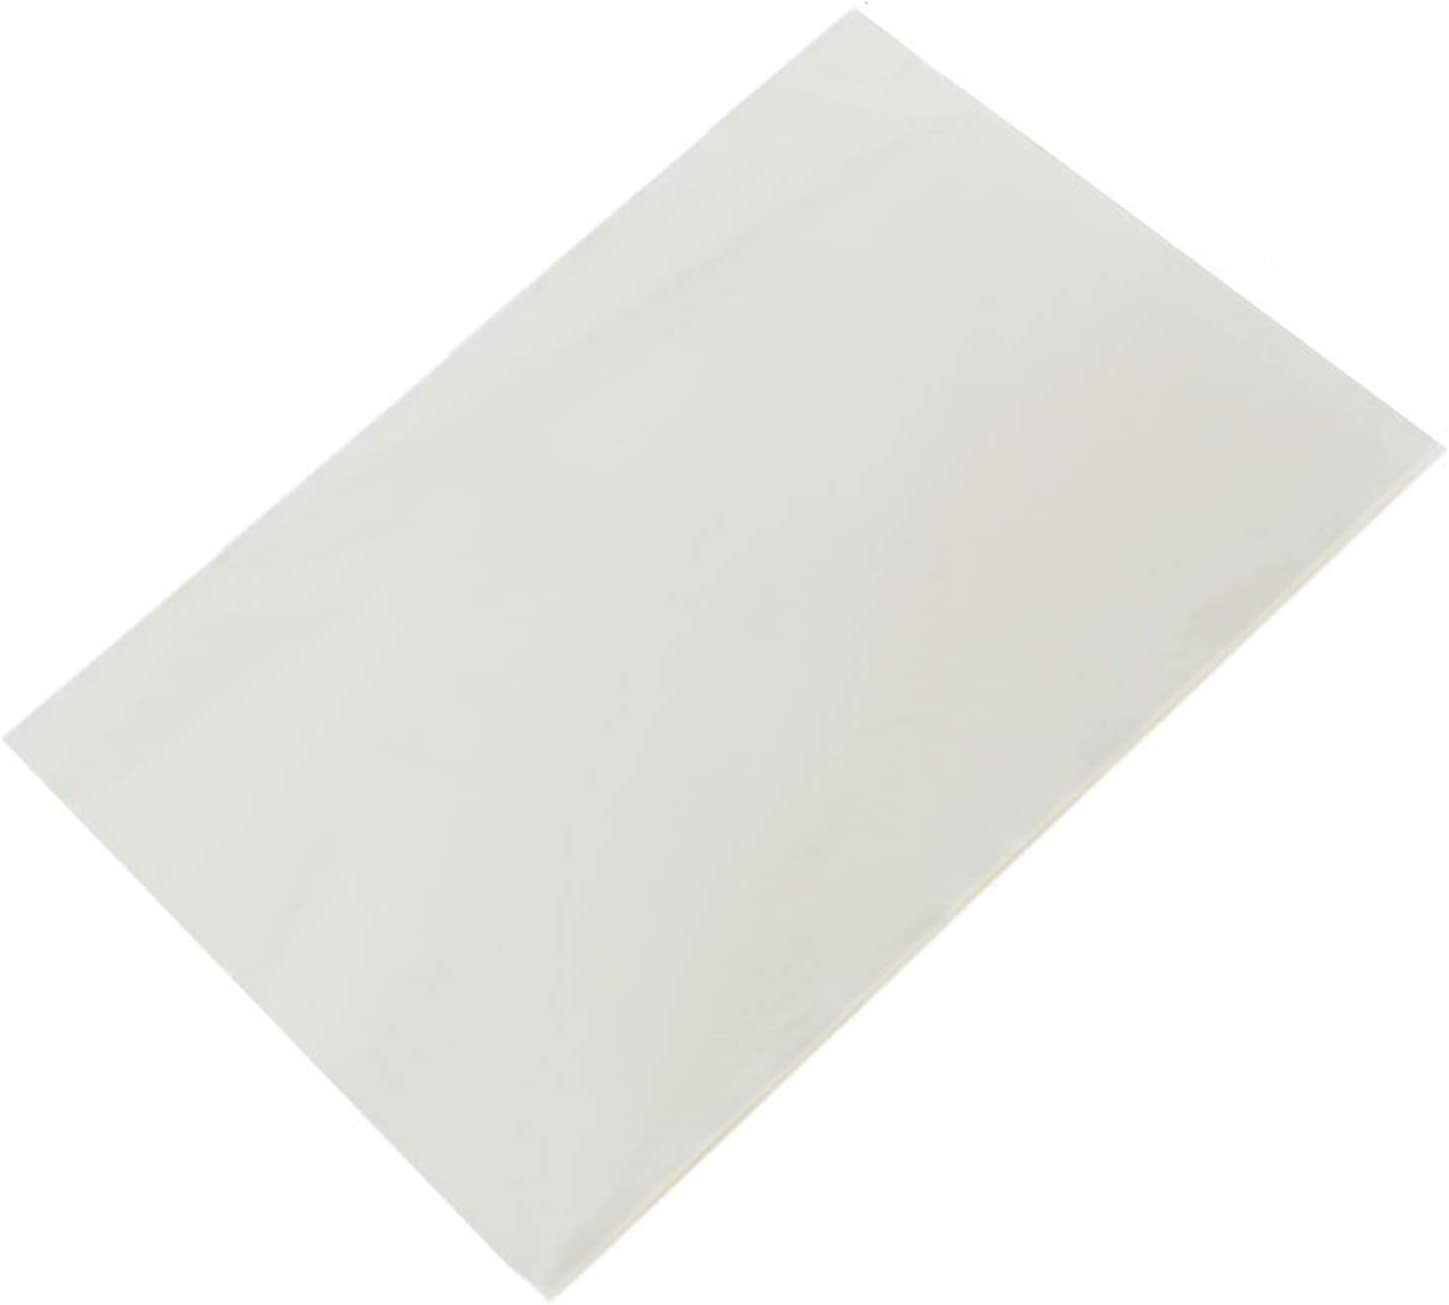 50 Count Edible Rectangle Rice and Wafer Paper,9x12.6 inches for candy packaging or food decoration